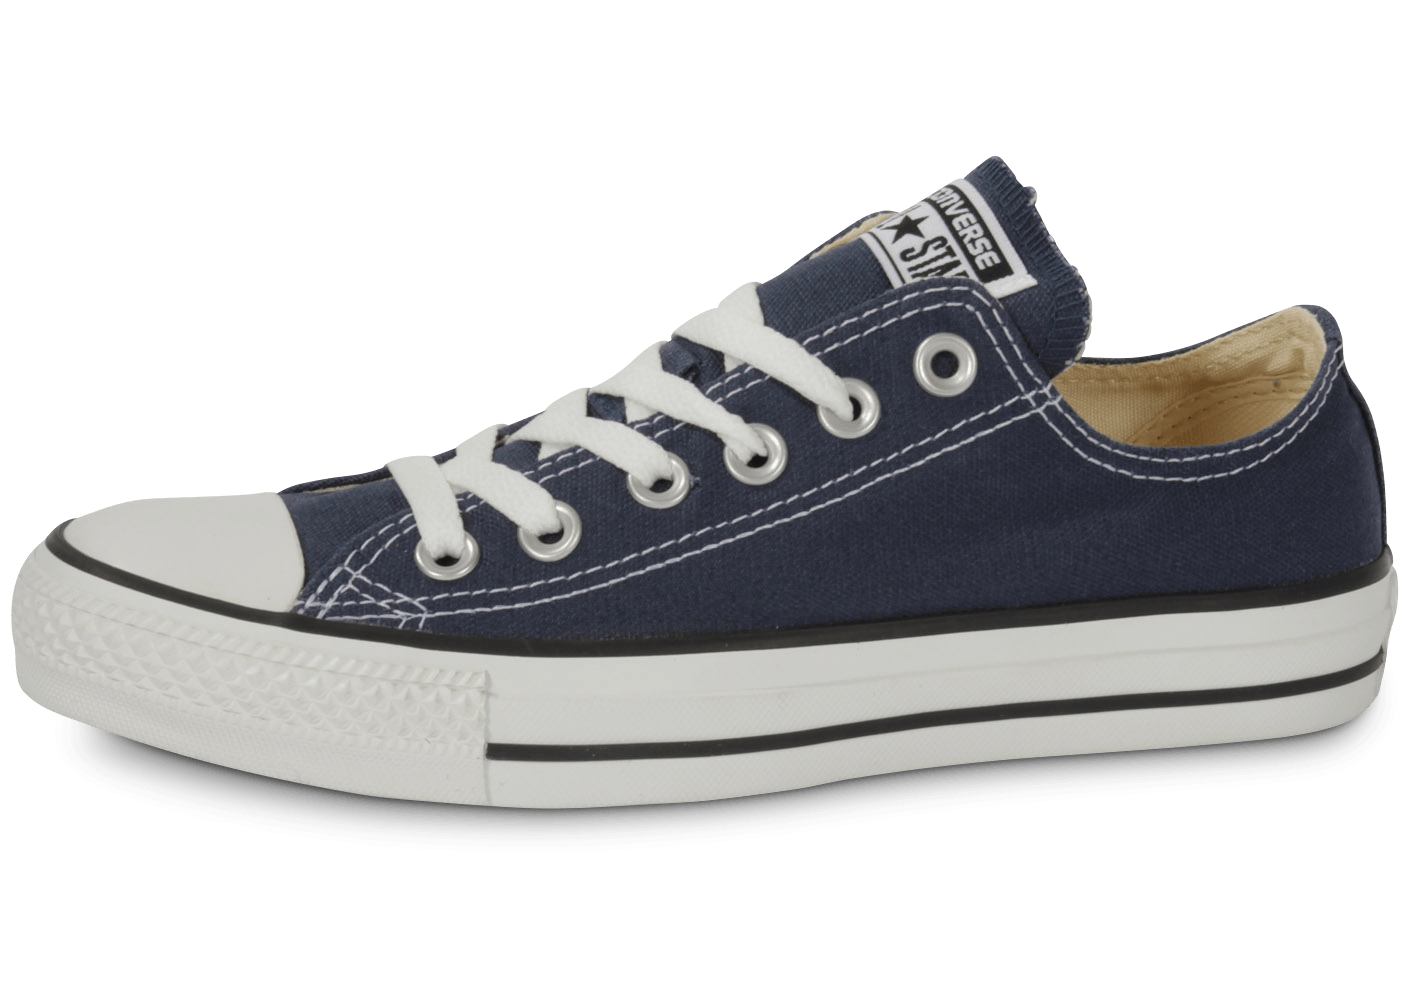 Converse Chuck Taylor All Star low bleu marine